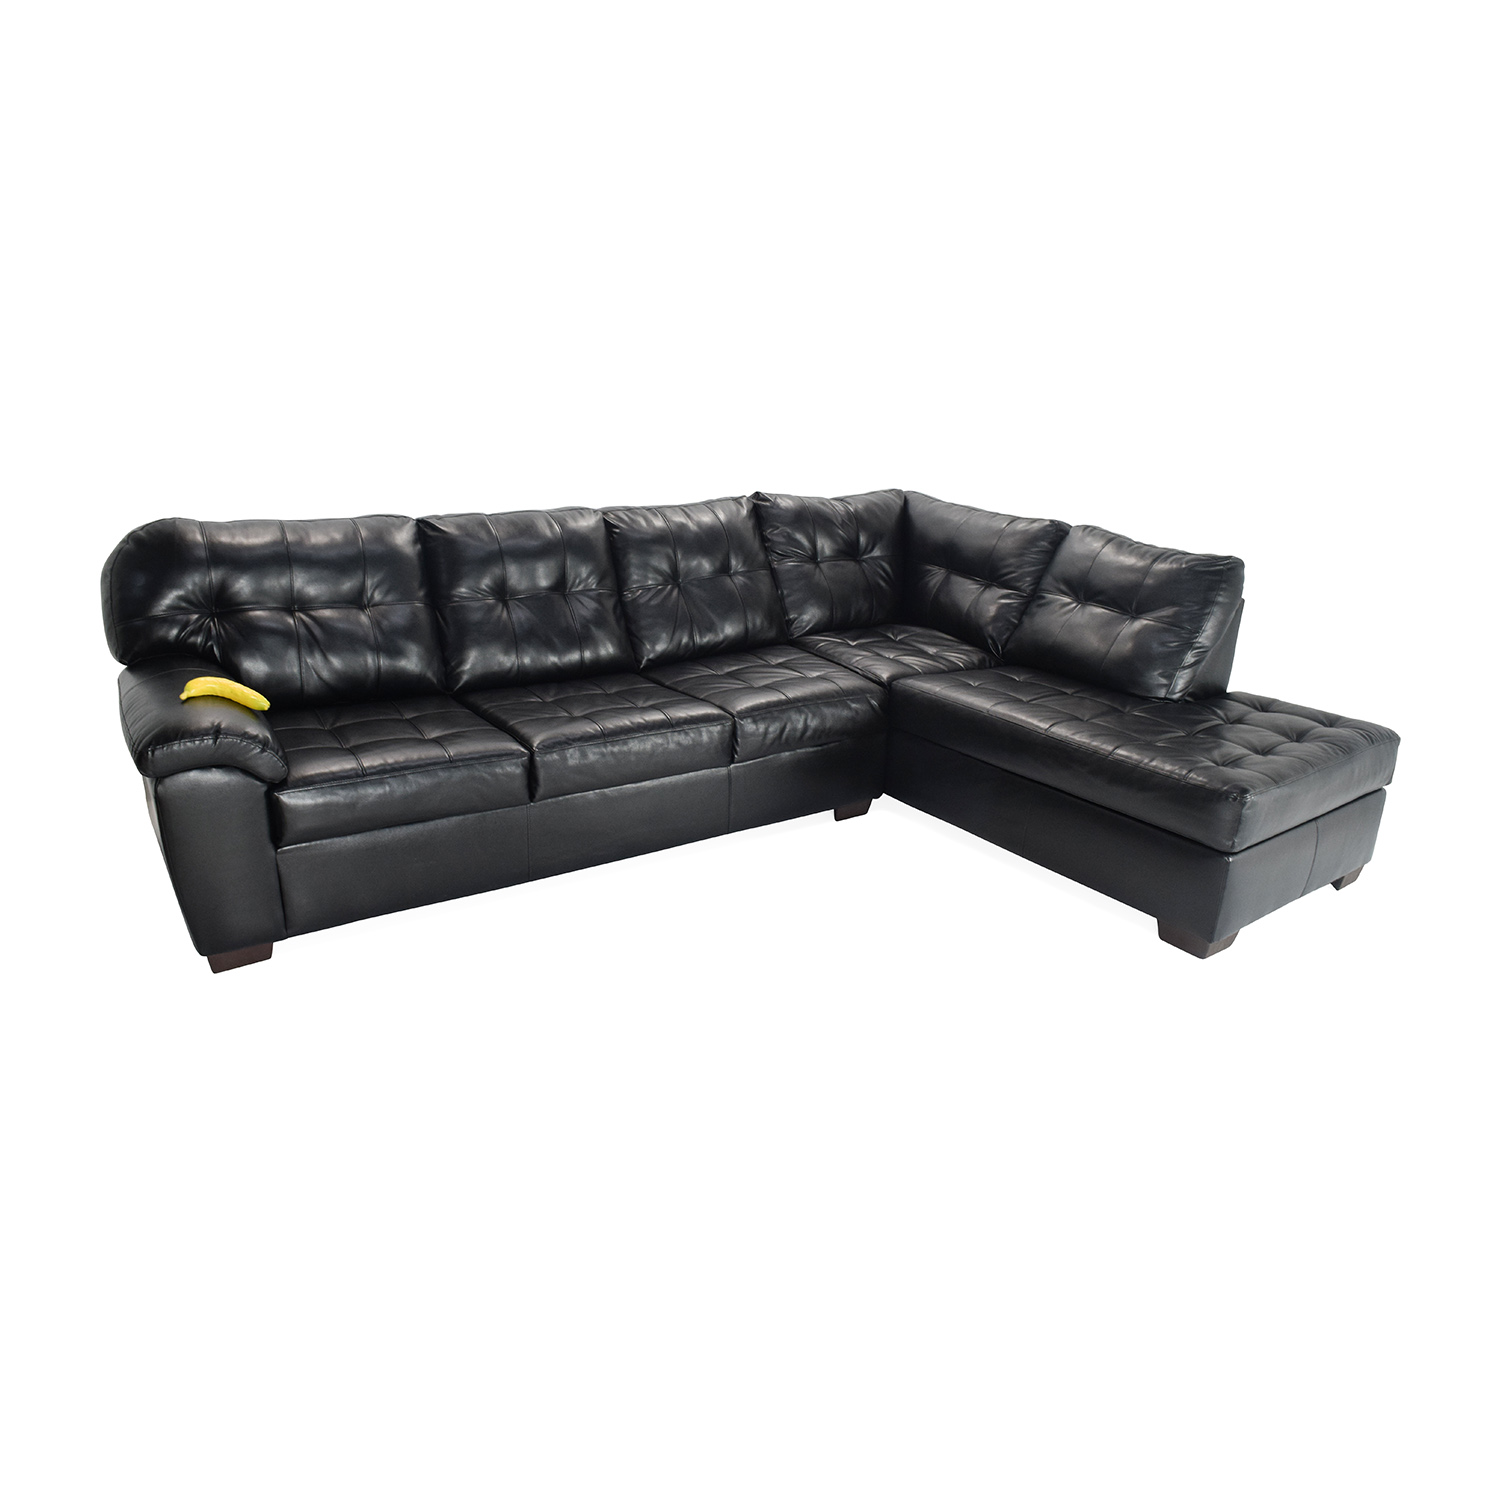 51% OFF - Bob's Discount Furniture Black Faux Leather ...